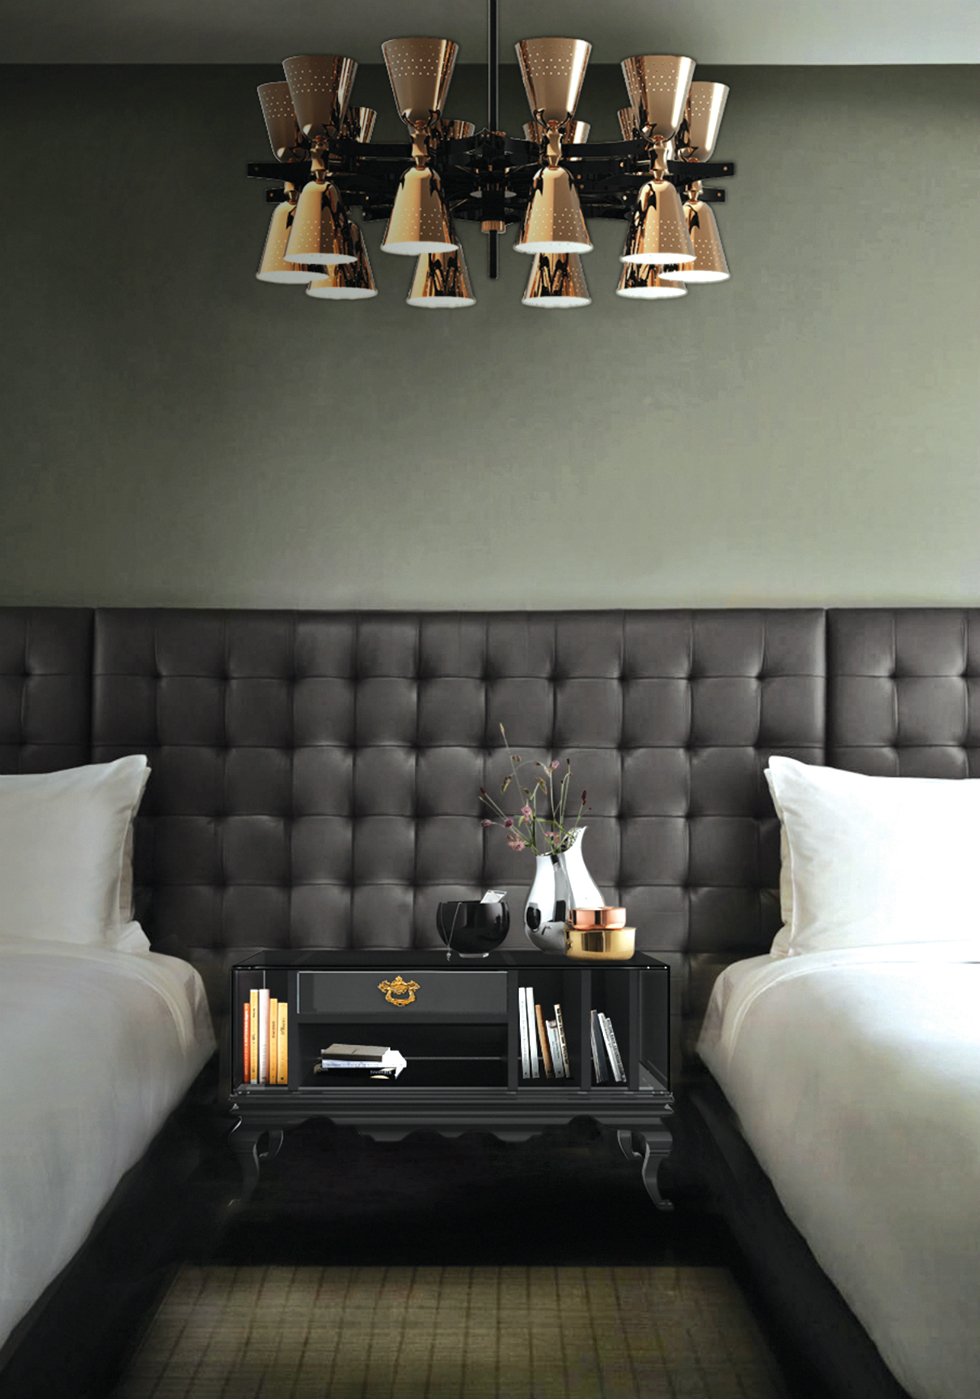 headboard ideas 5 secrets about Headboard Ideas that You Need to Know tower 4